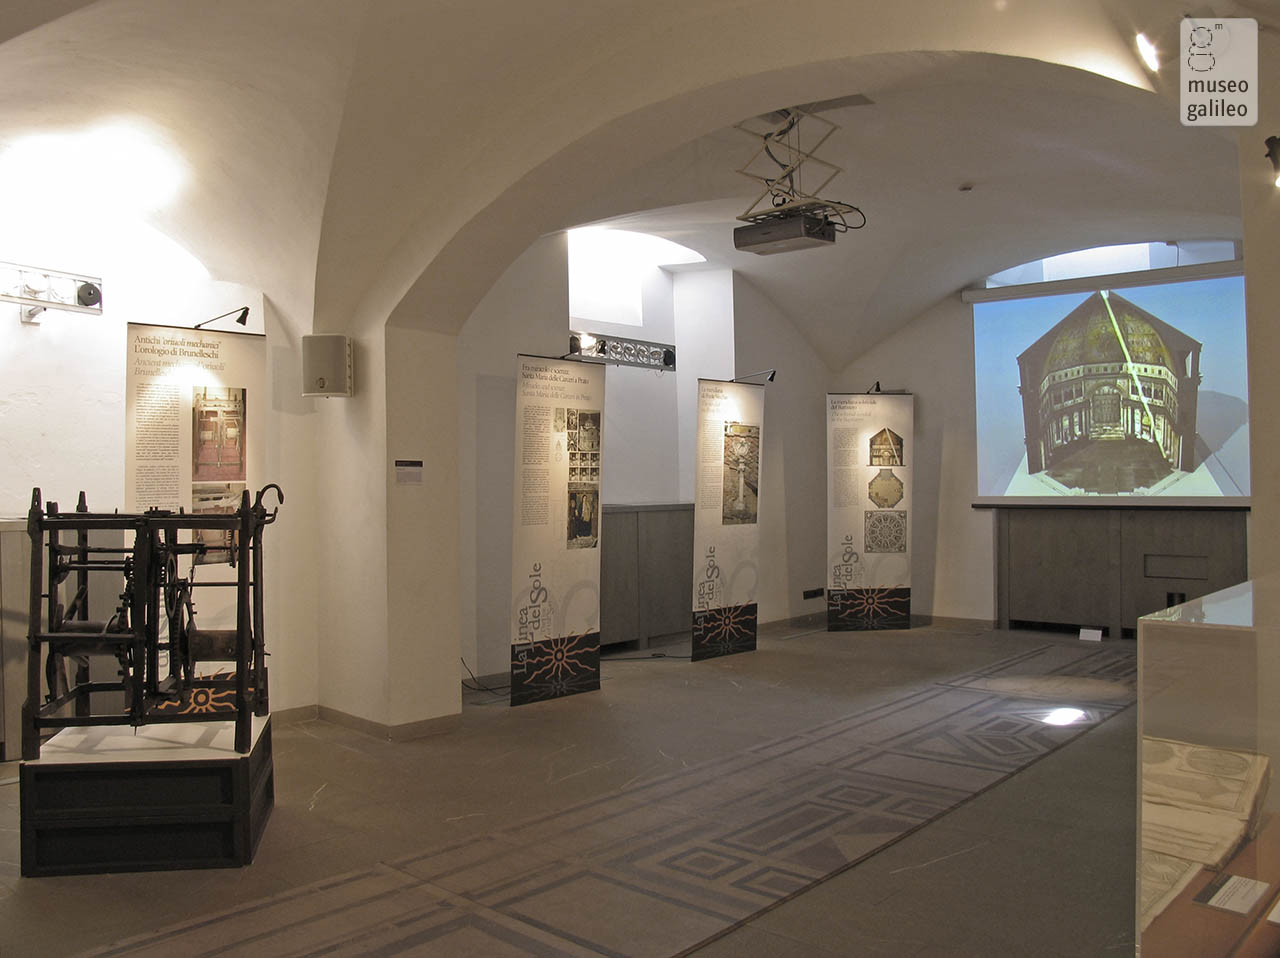 The Line of the Sun. Great sundials in Florence. Exhibition hall, Florence, Museo Galileo